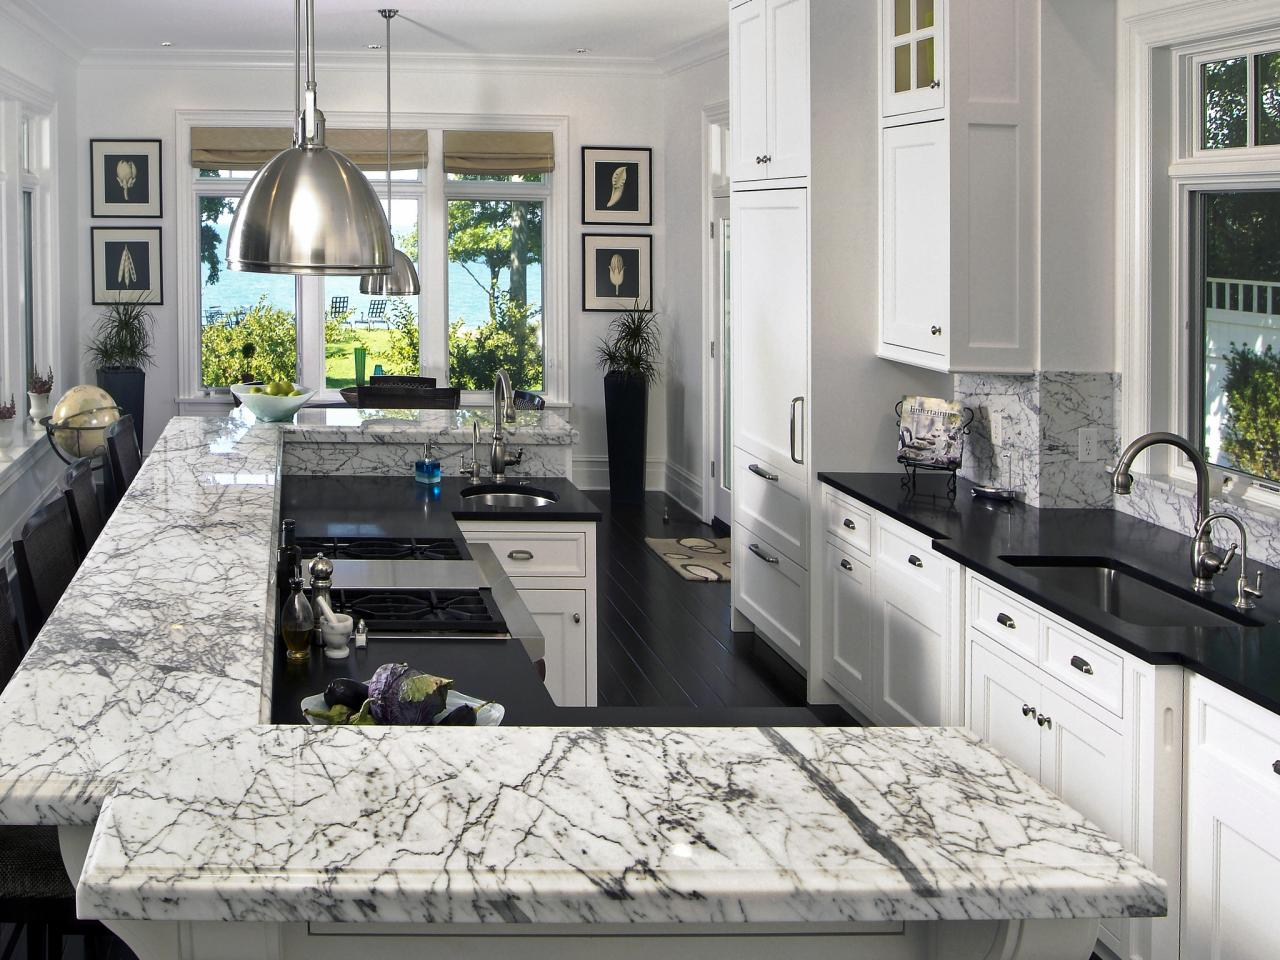 quartz granite or solid surface whats your perfect kitchen countertop surface countertop kitchen Image credit Marble Granite